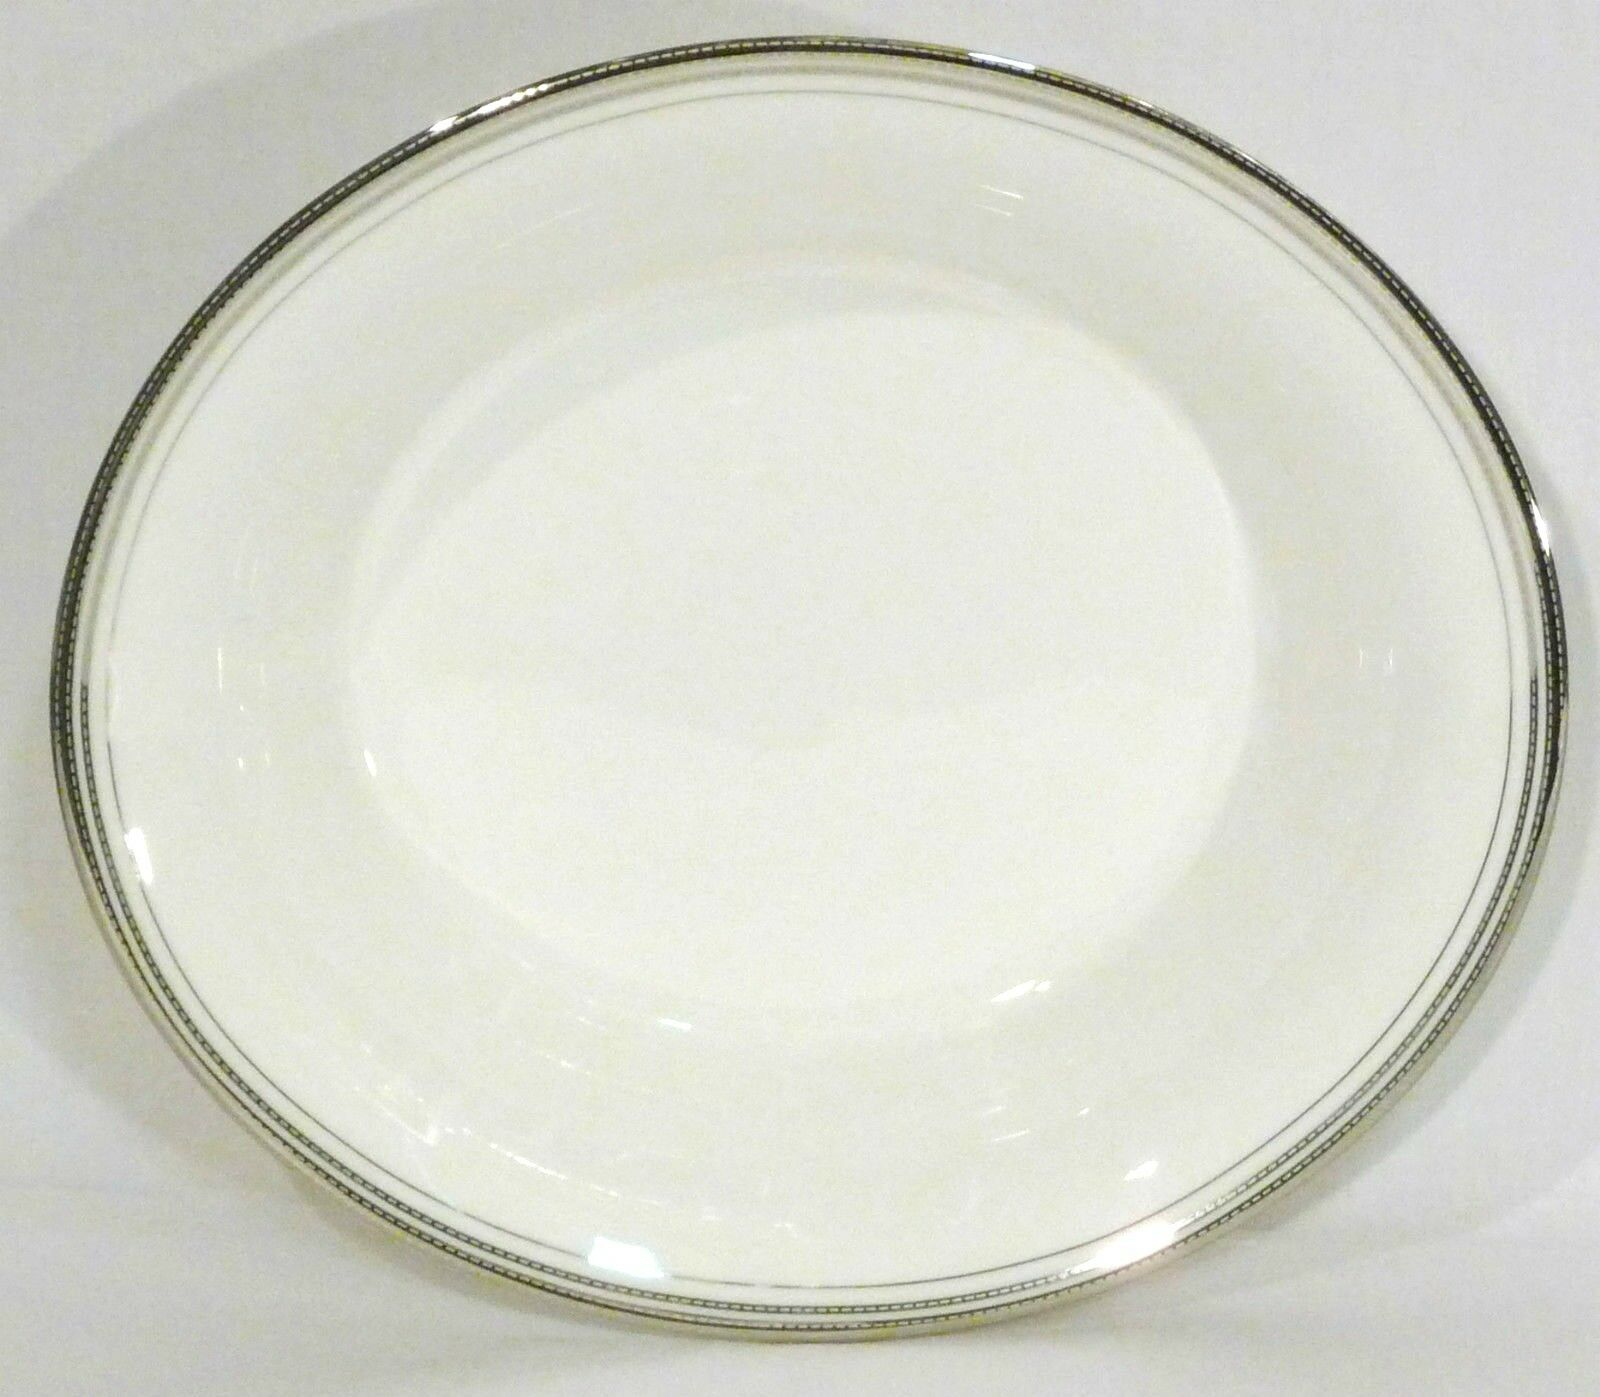 Monique Lhuillier for Waterford Platine Oval Vegetable Bowl 10 1 2 L